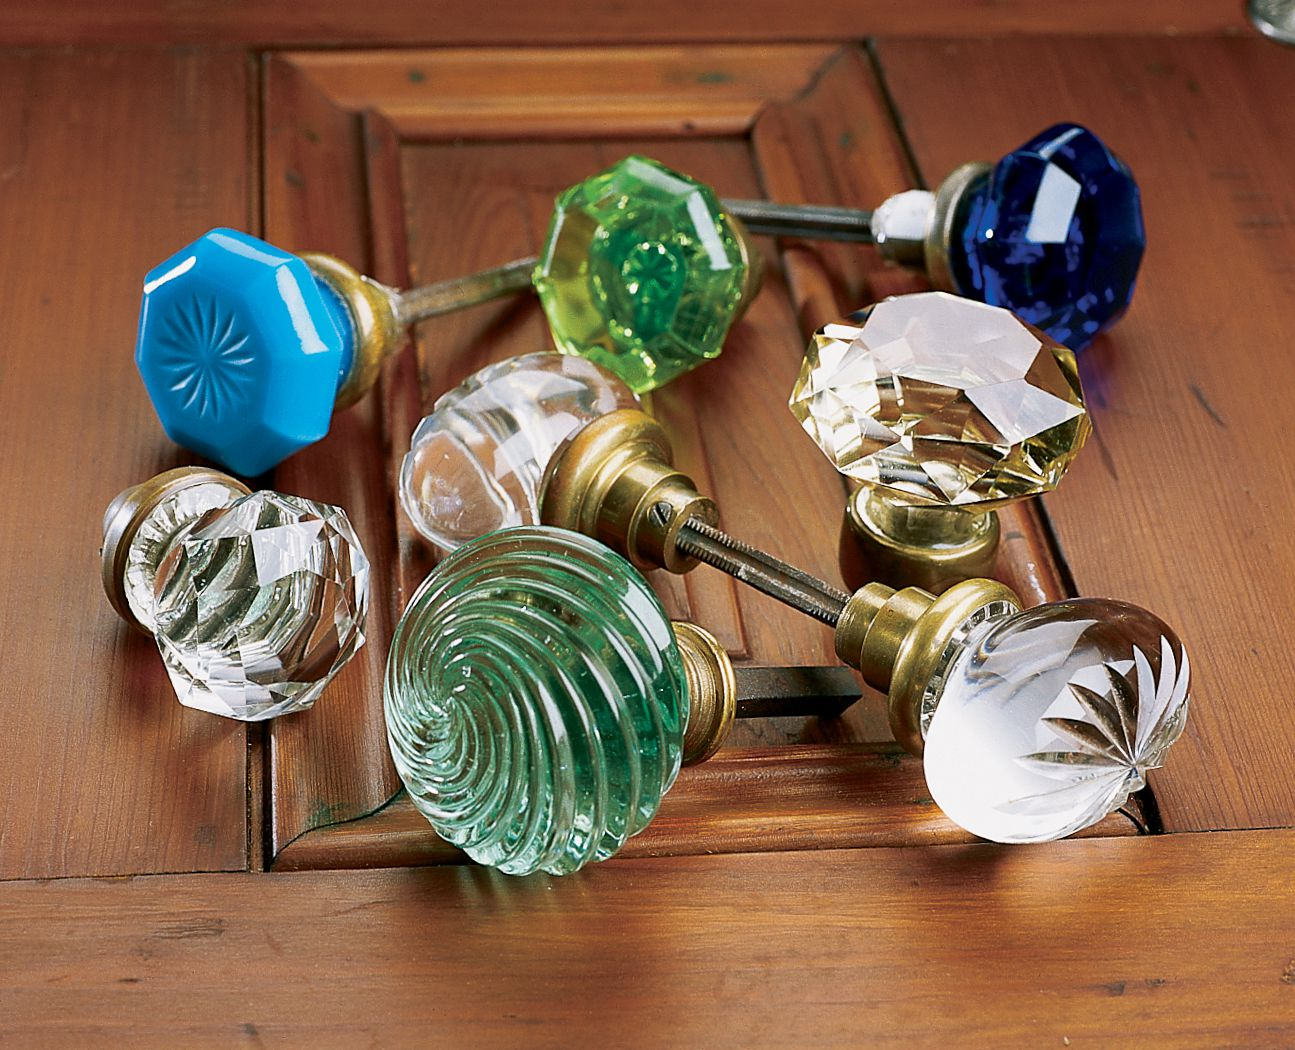 With Fitting Hardware Doors Clear Bubble Bubbled Round Glass Knob Furniture Drawers Handle Pull Kitchens for Cupboards Cabinets